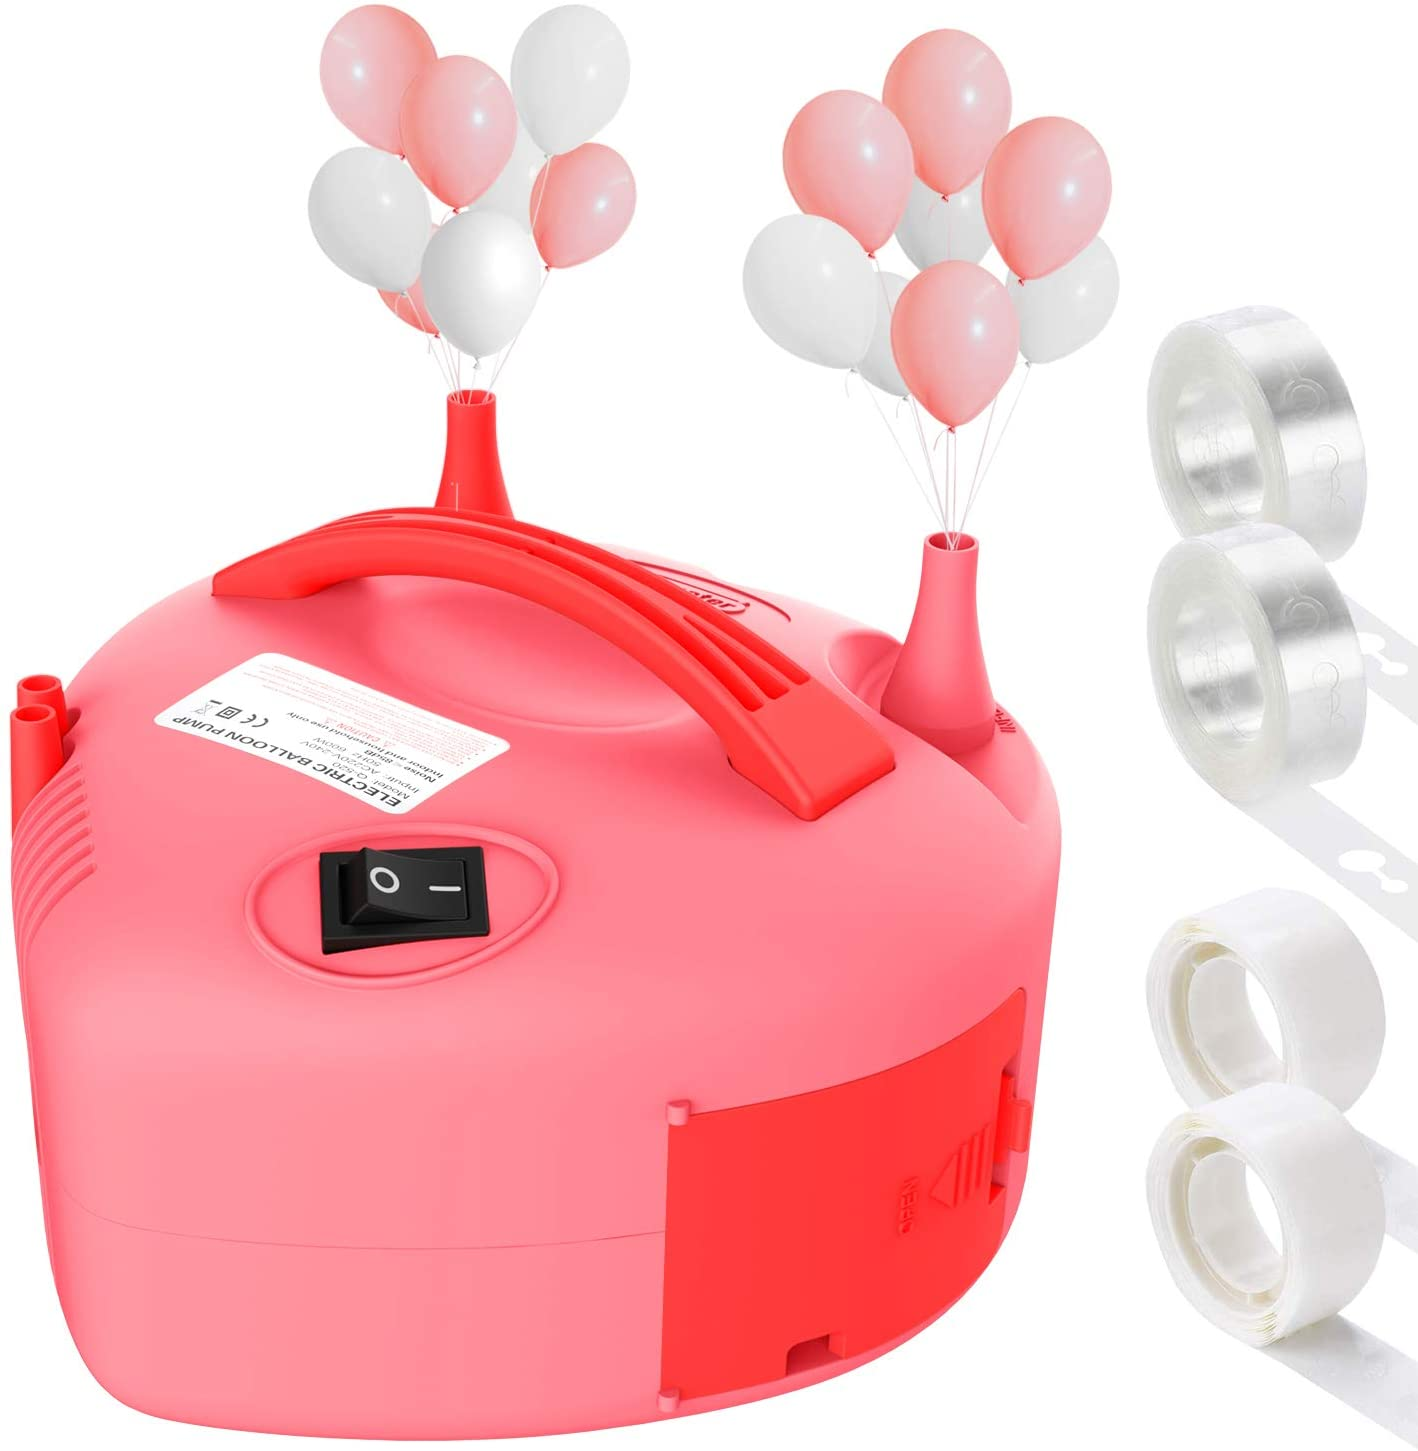 Dr.meter Electric Balloon Pump, 110V 600W Auto/Semi-auto Portable Balloon Inflator Pump with Dual Nozzles Blower for Party/Wedding/Christmas/Birthday/Ceremony Decoration